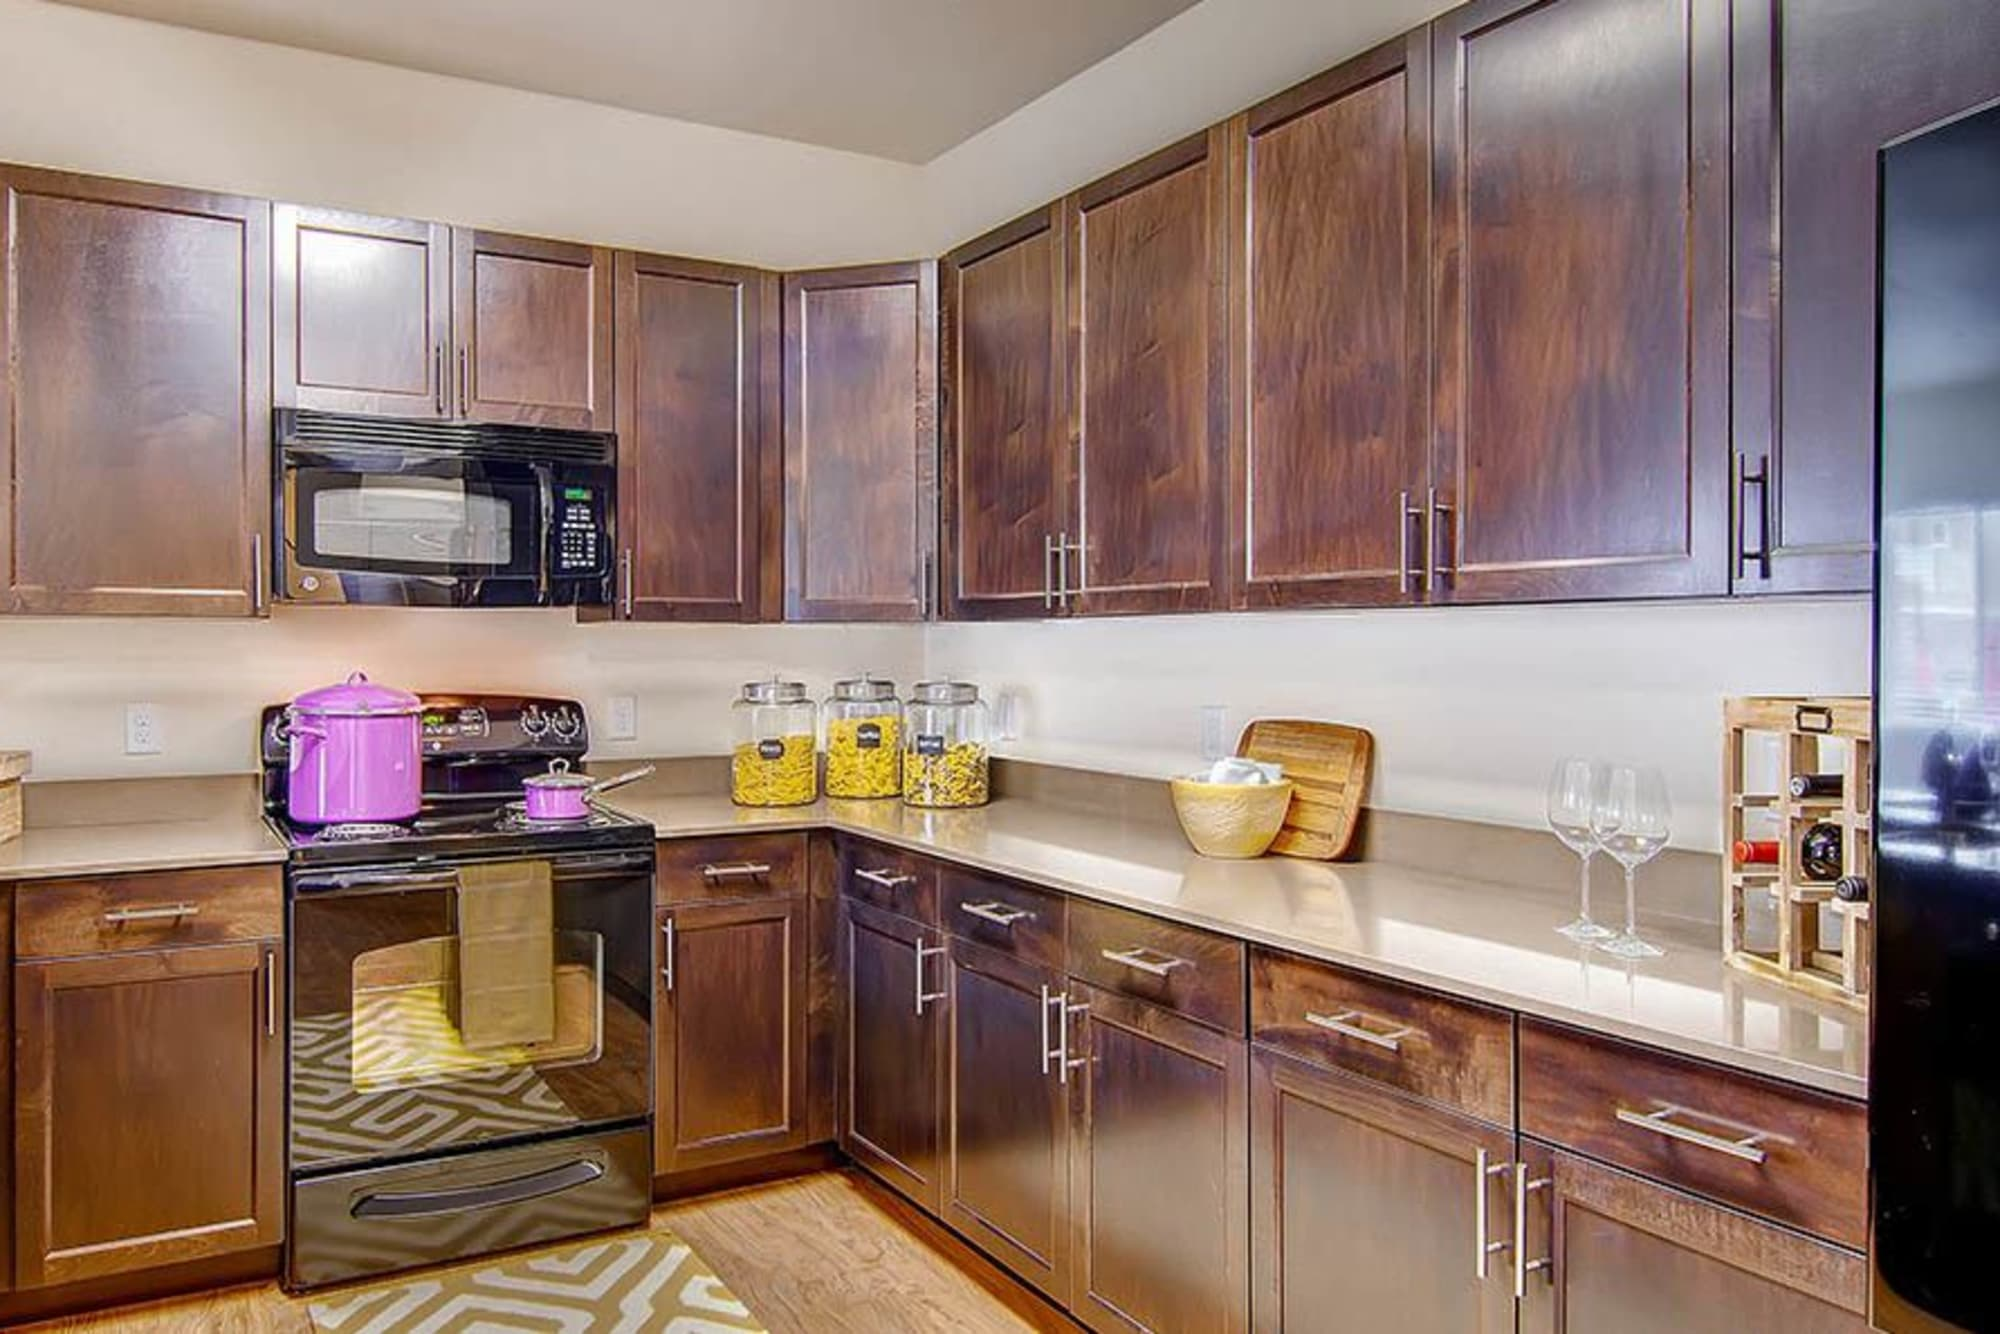 A beautiful kitchen at M2 Apartments in Denver, Colorado